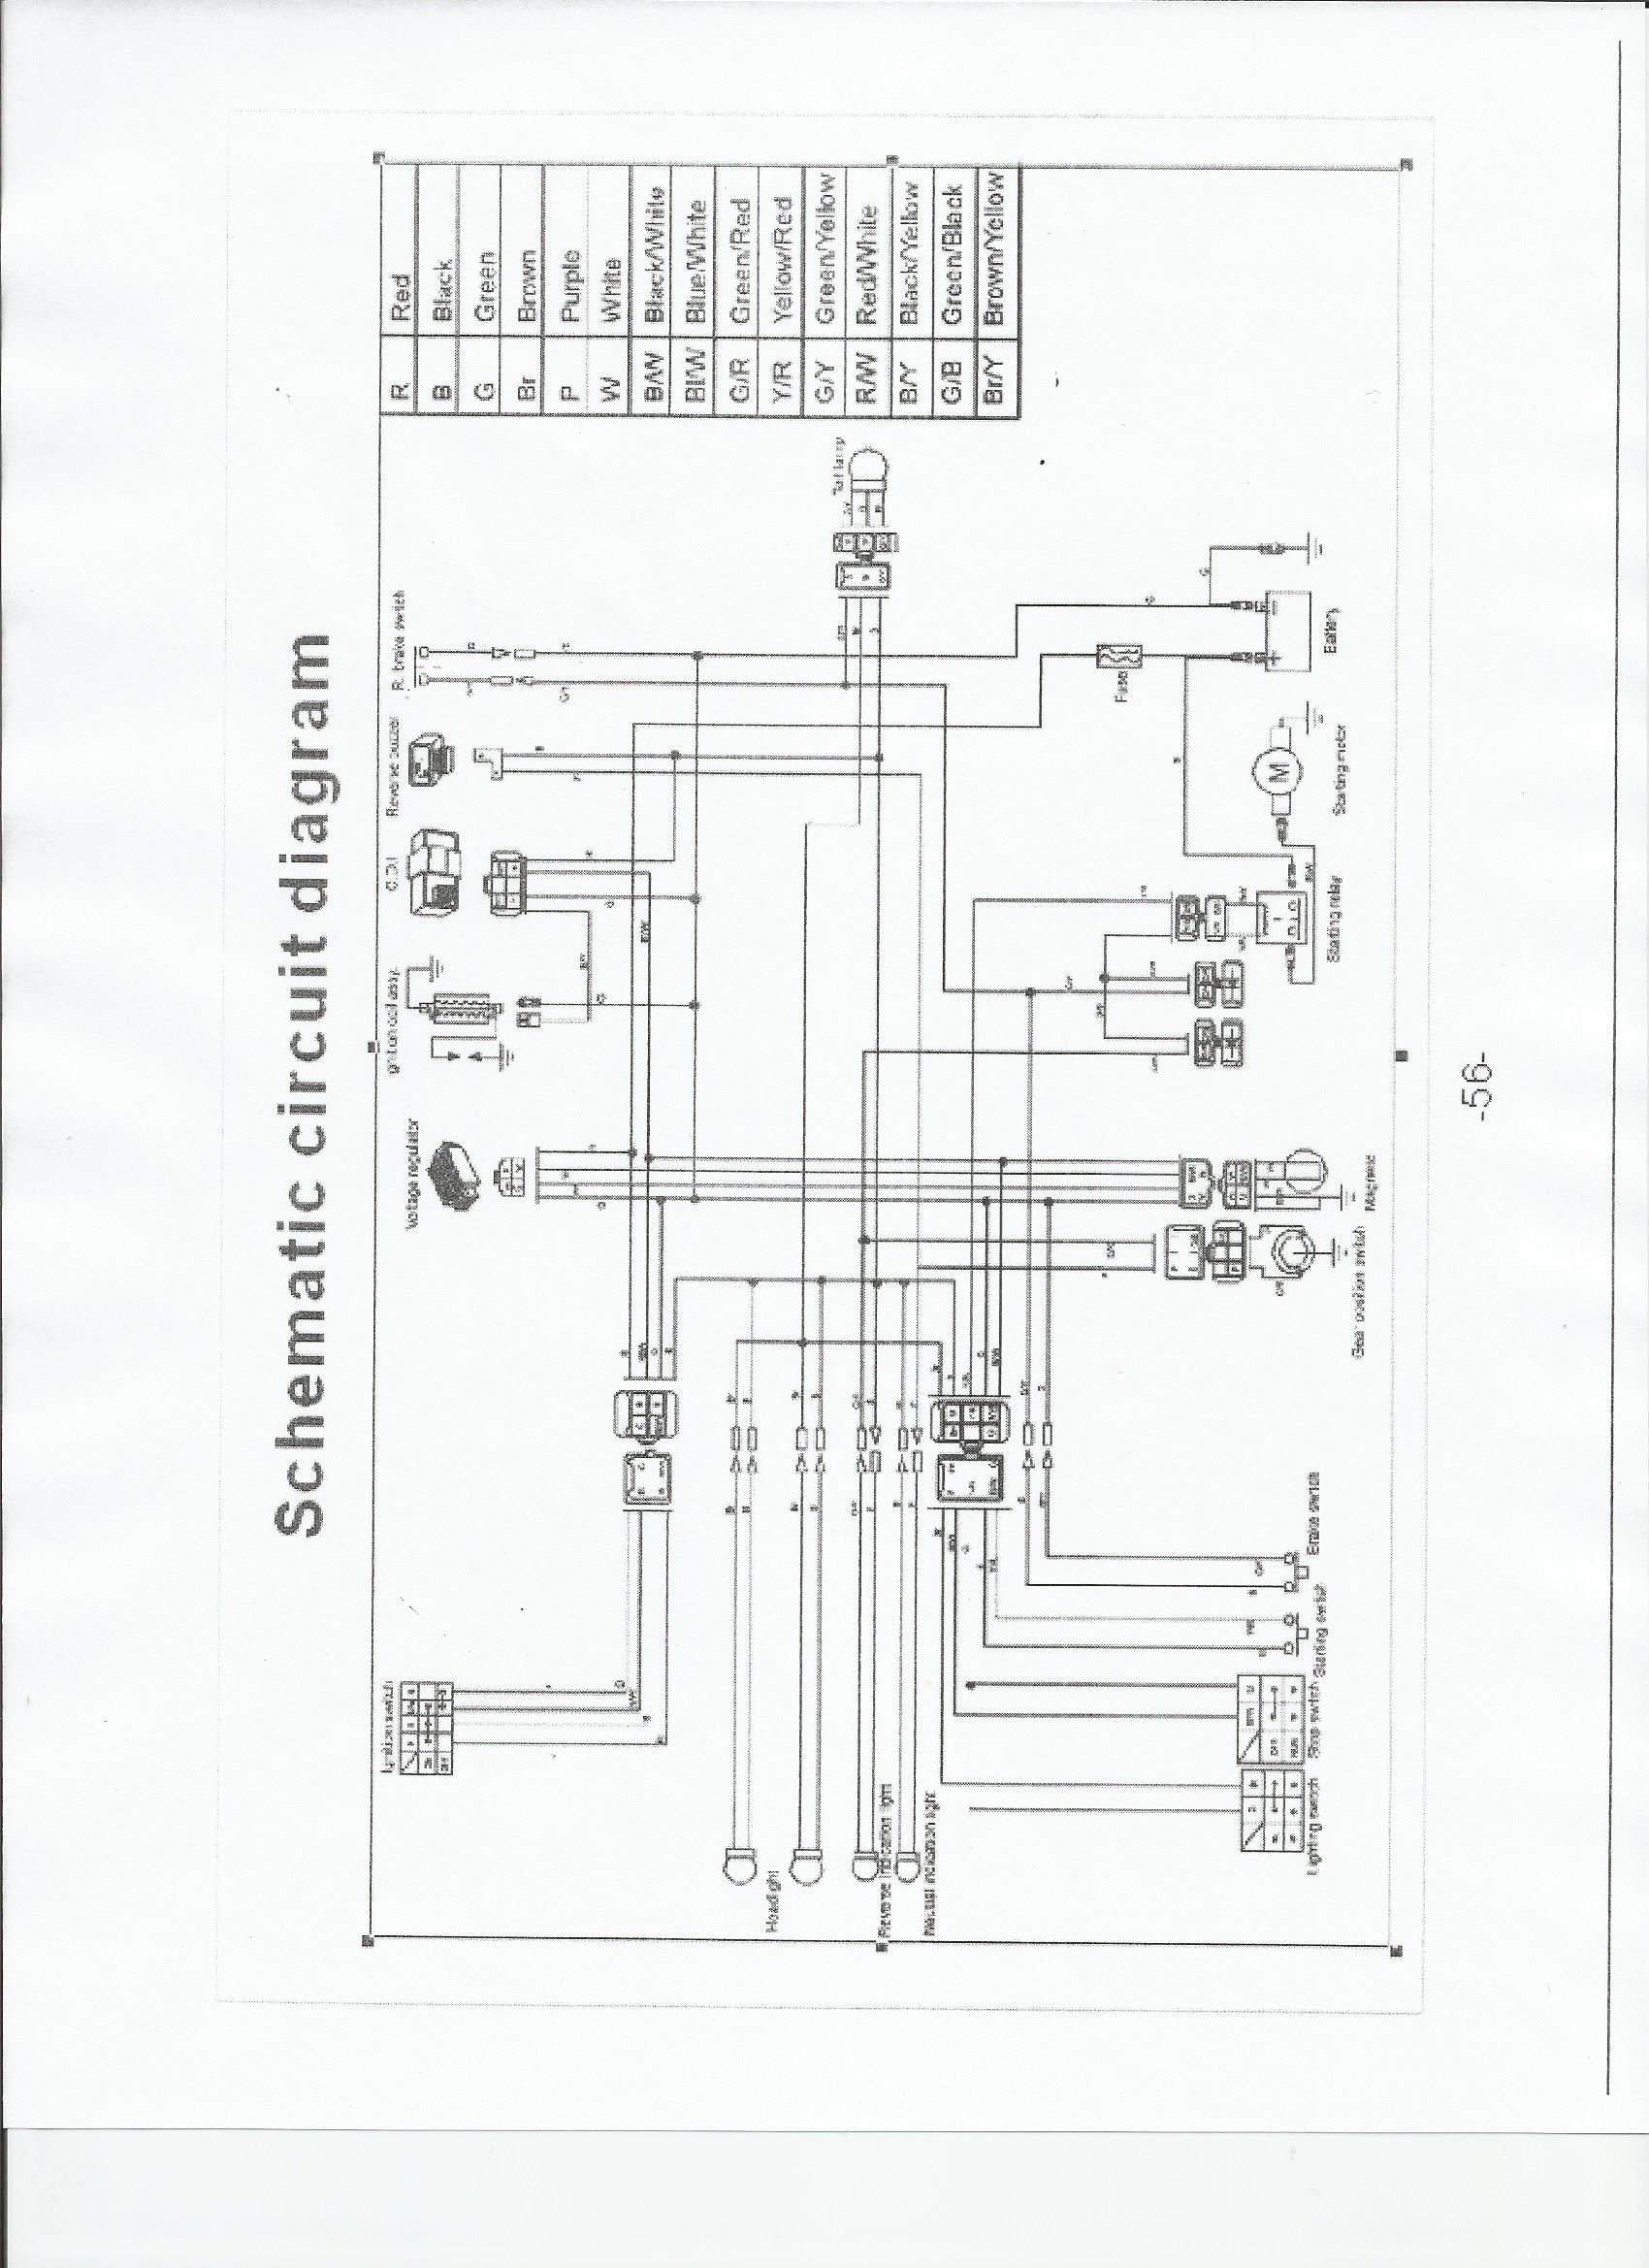 taotao mini and youth atv wiring schematic familygokarts support rh support familygokarts com 110cc atv wiring schematic taotao atv wiring schematic